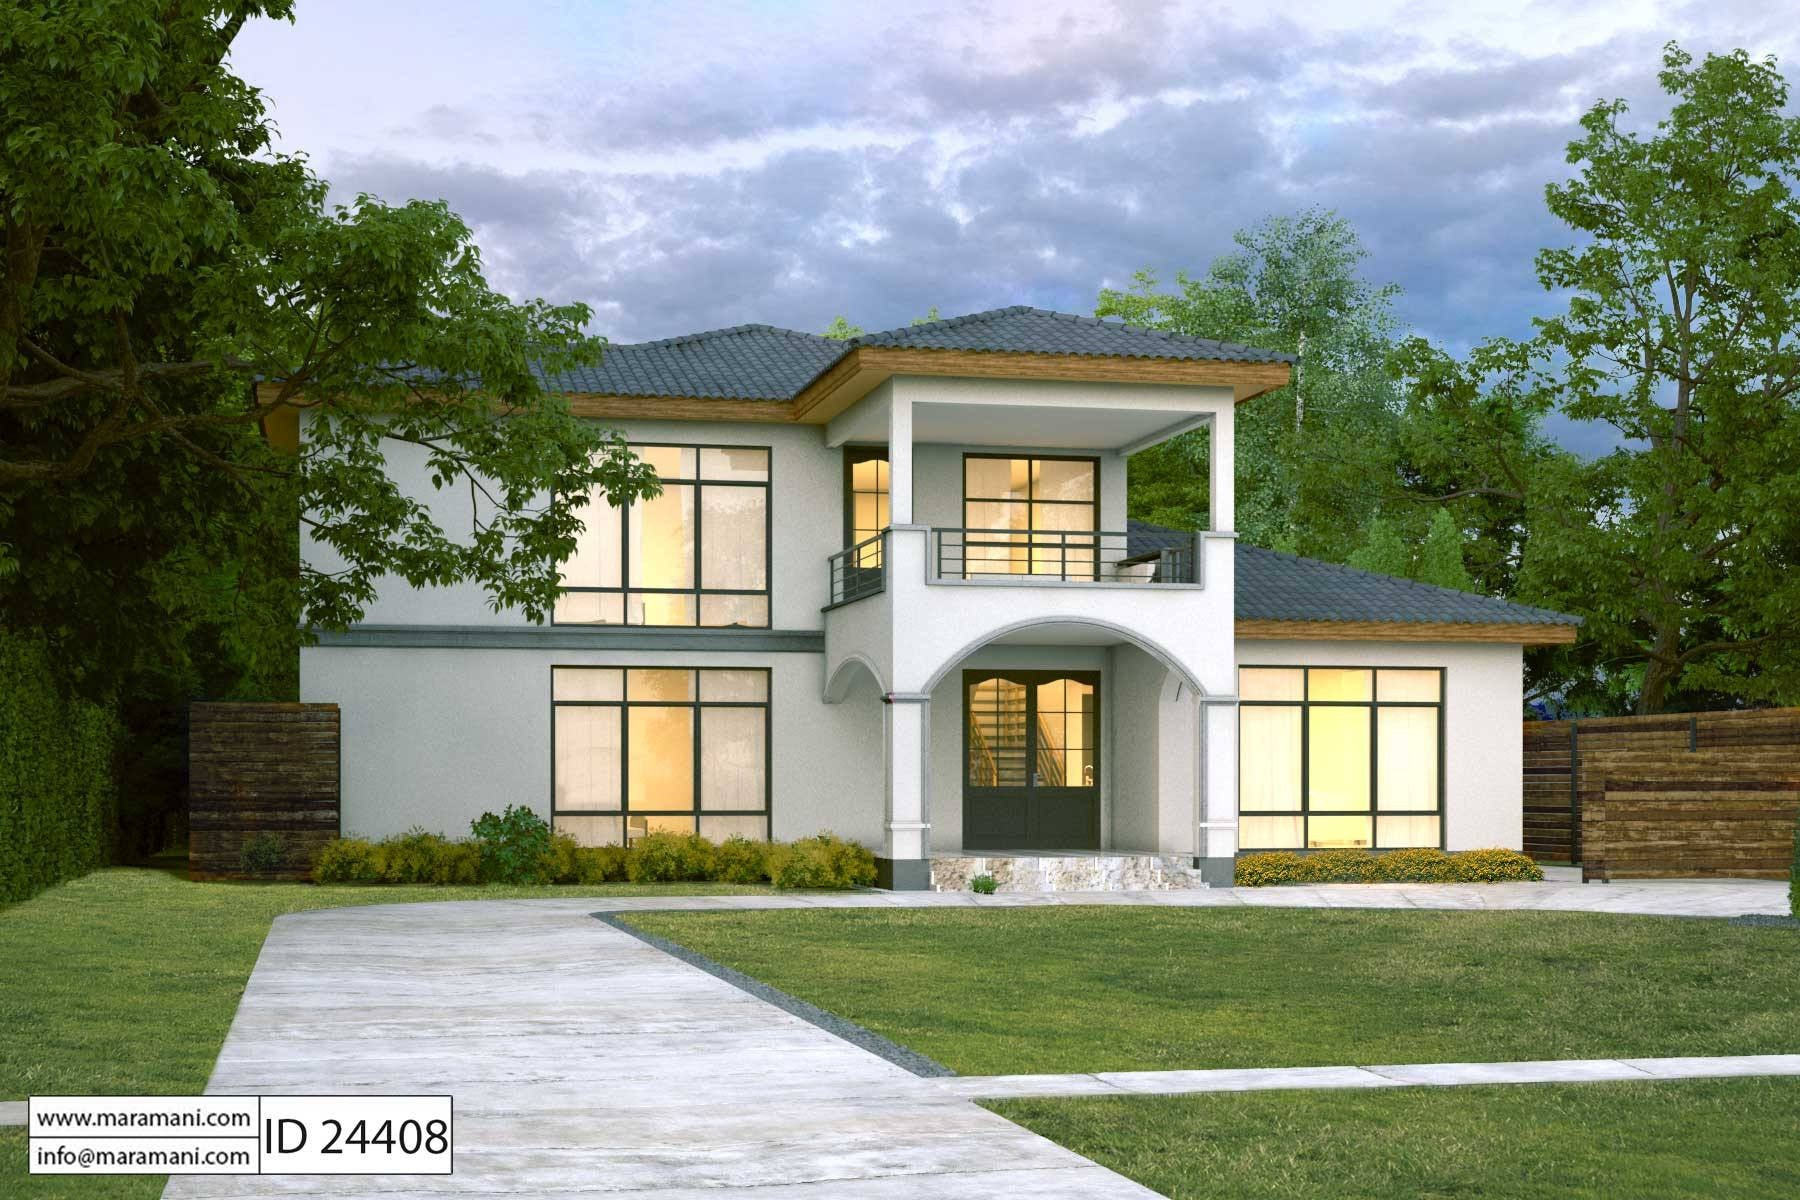 Urban 4 bedroom house plan id 24408 house plans maramani for Urban house plans